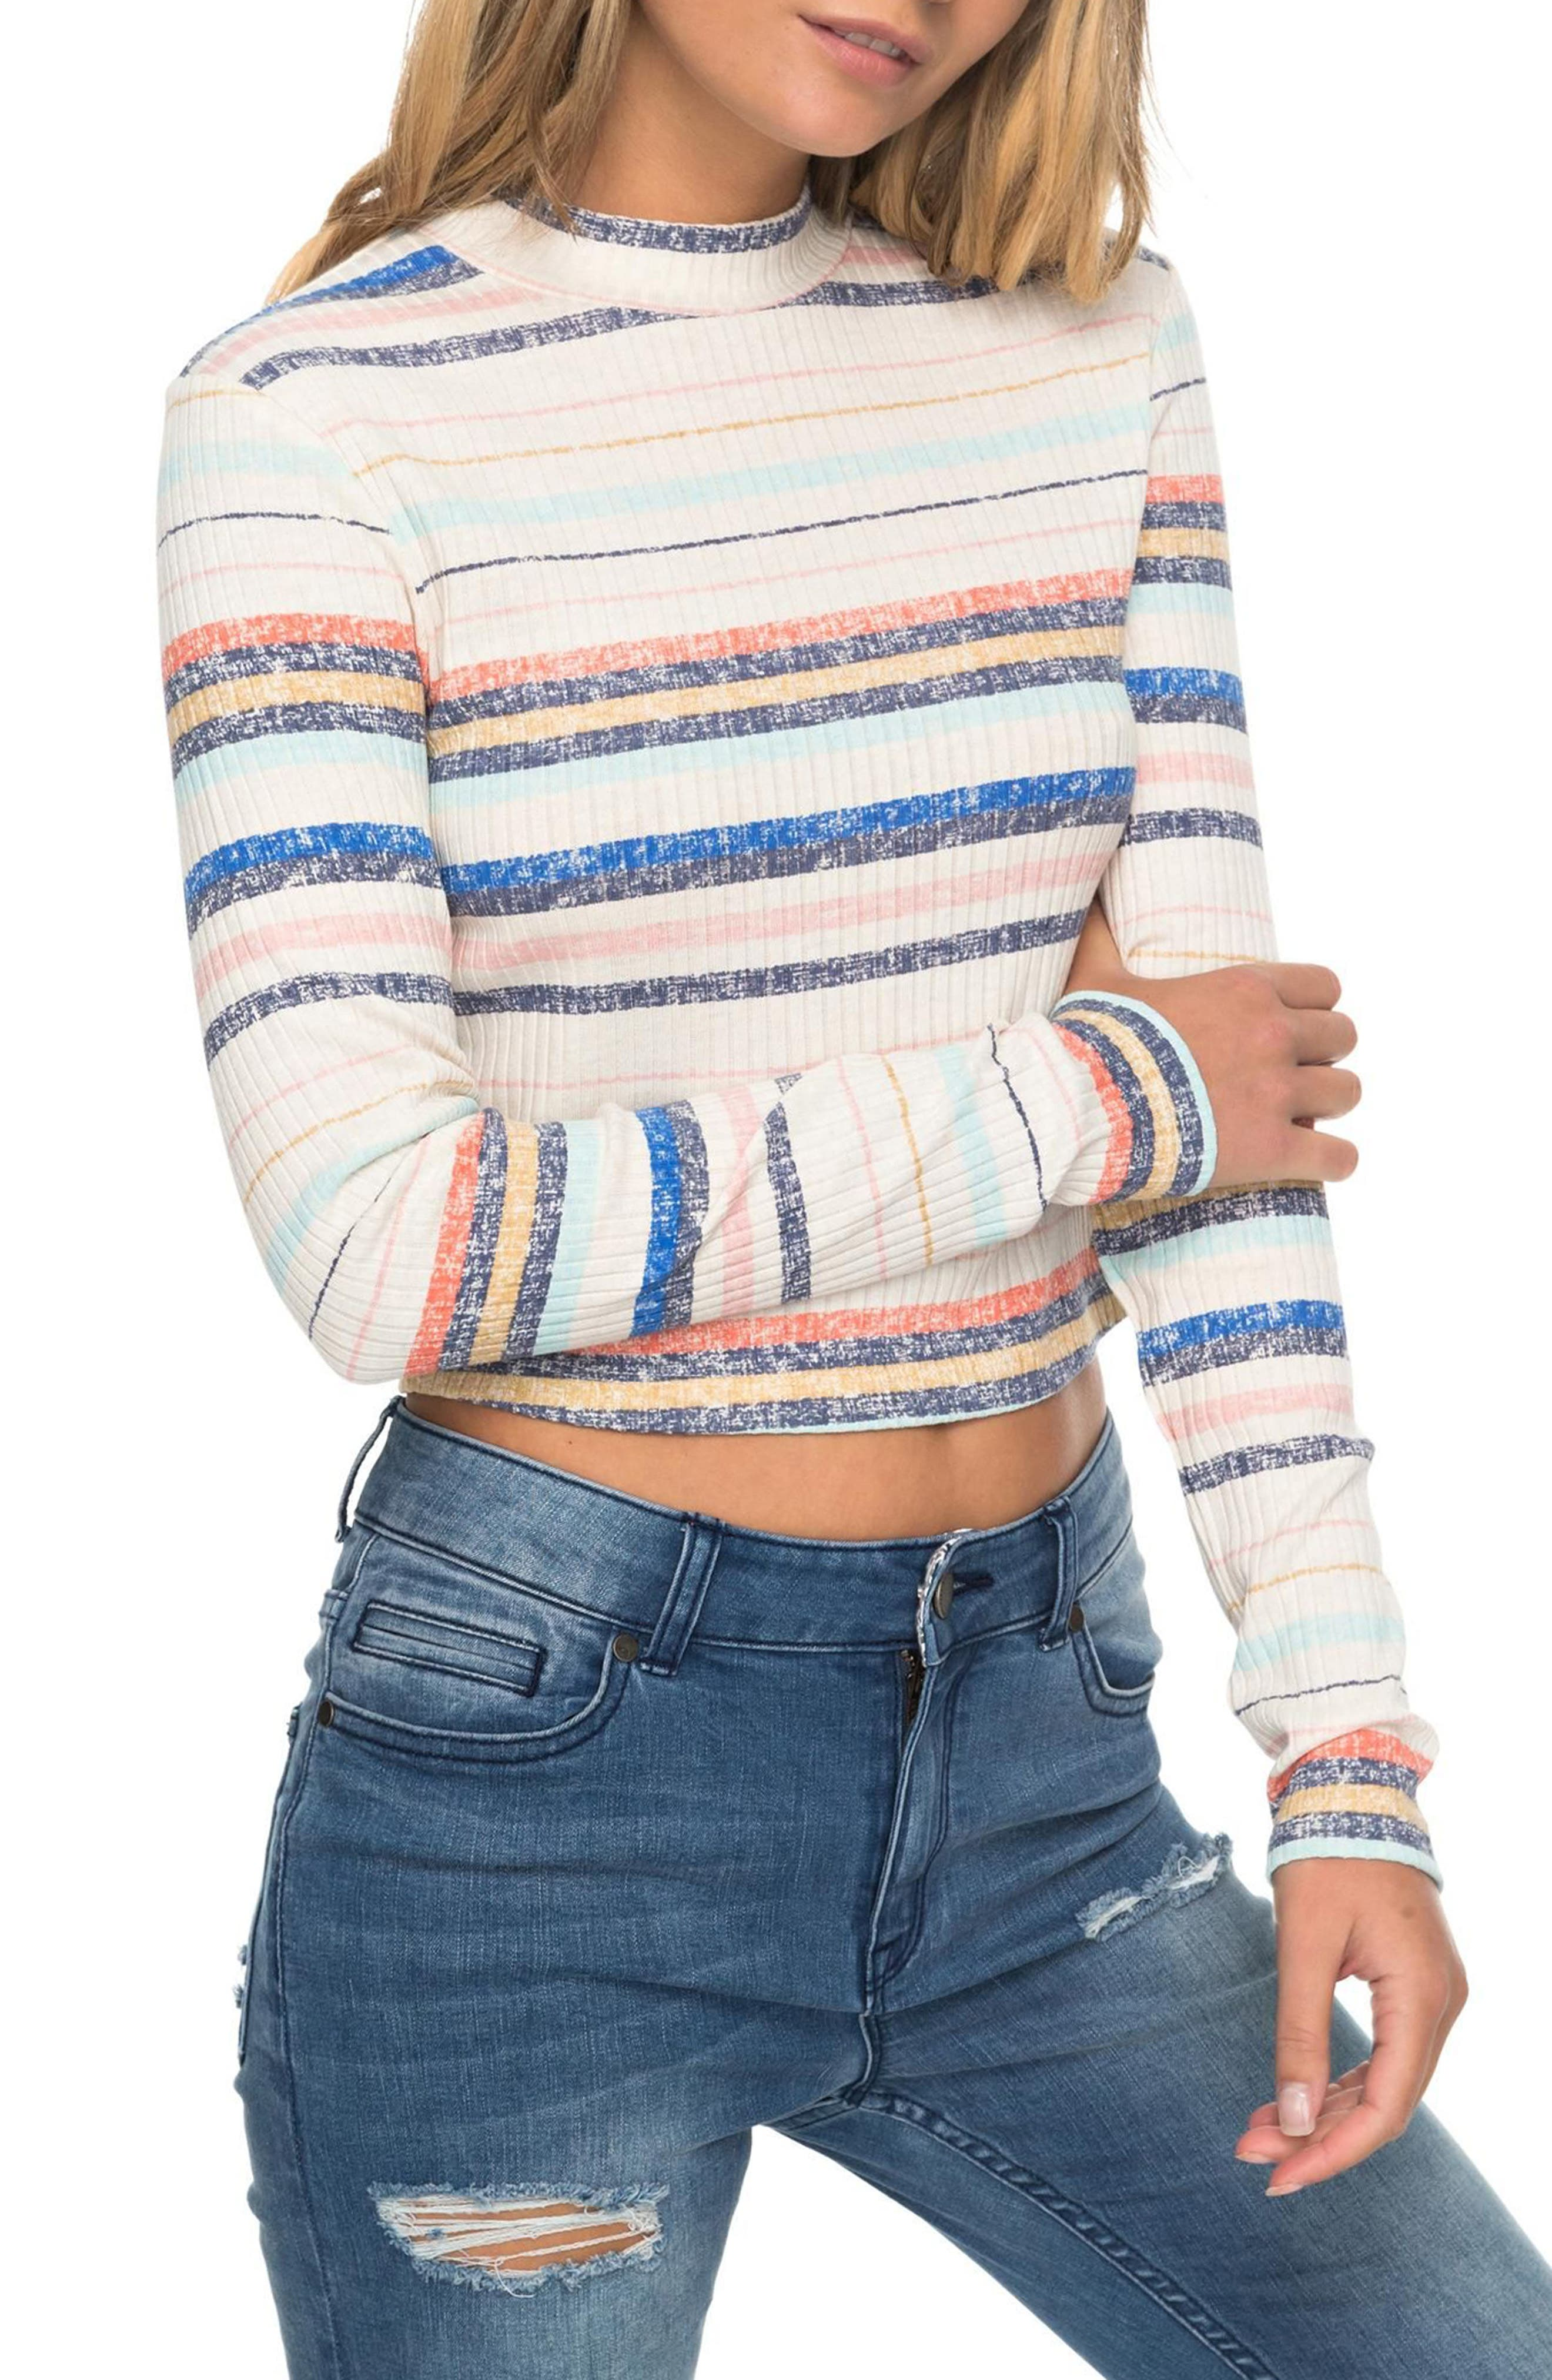 Alternate Image 1 Selected - Roxy Smooth Move Mock Neck Crop Sweater